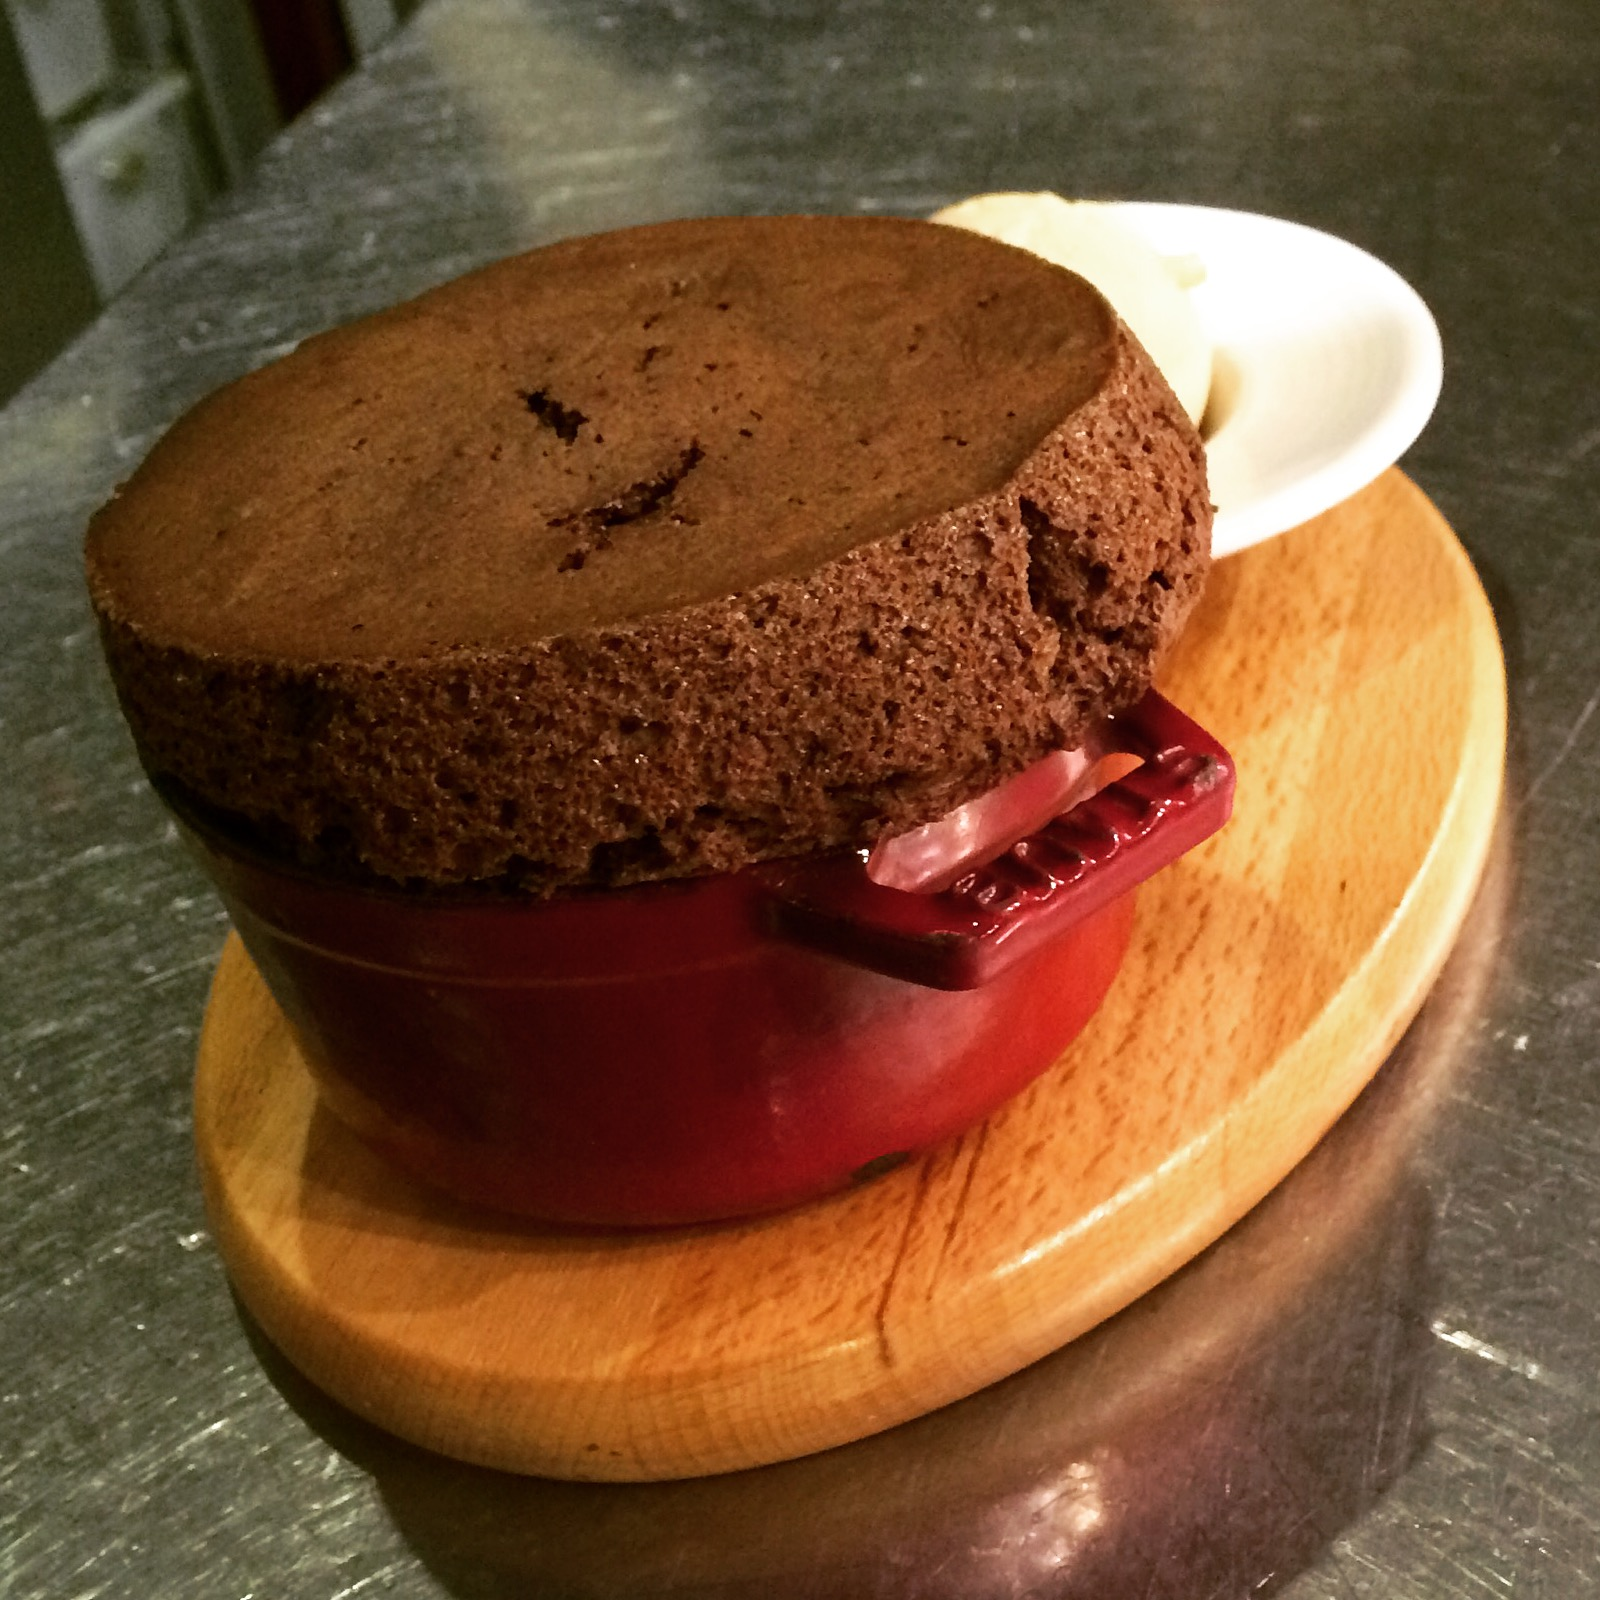 Signature Dessert Chocolate Souffle